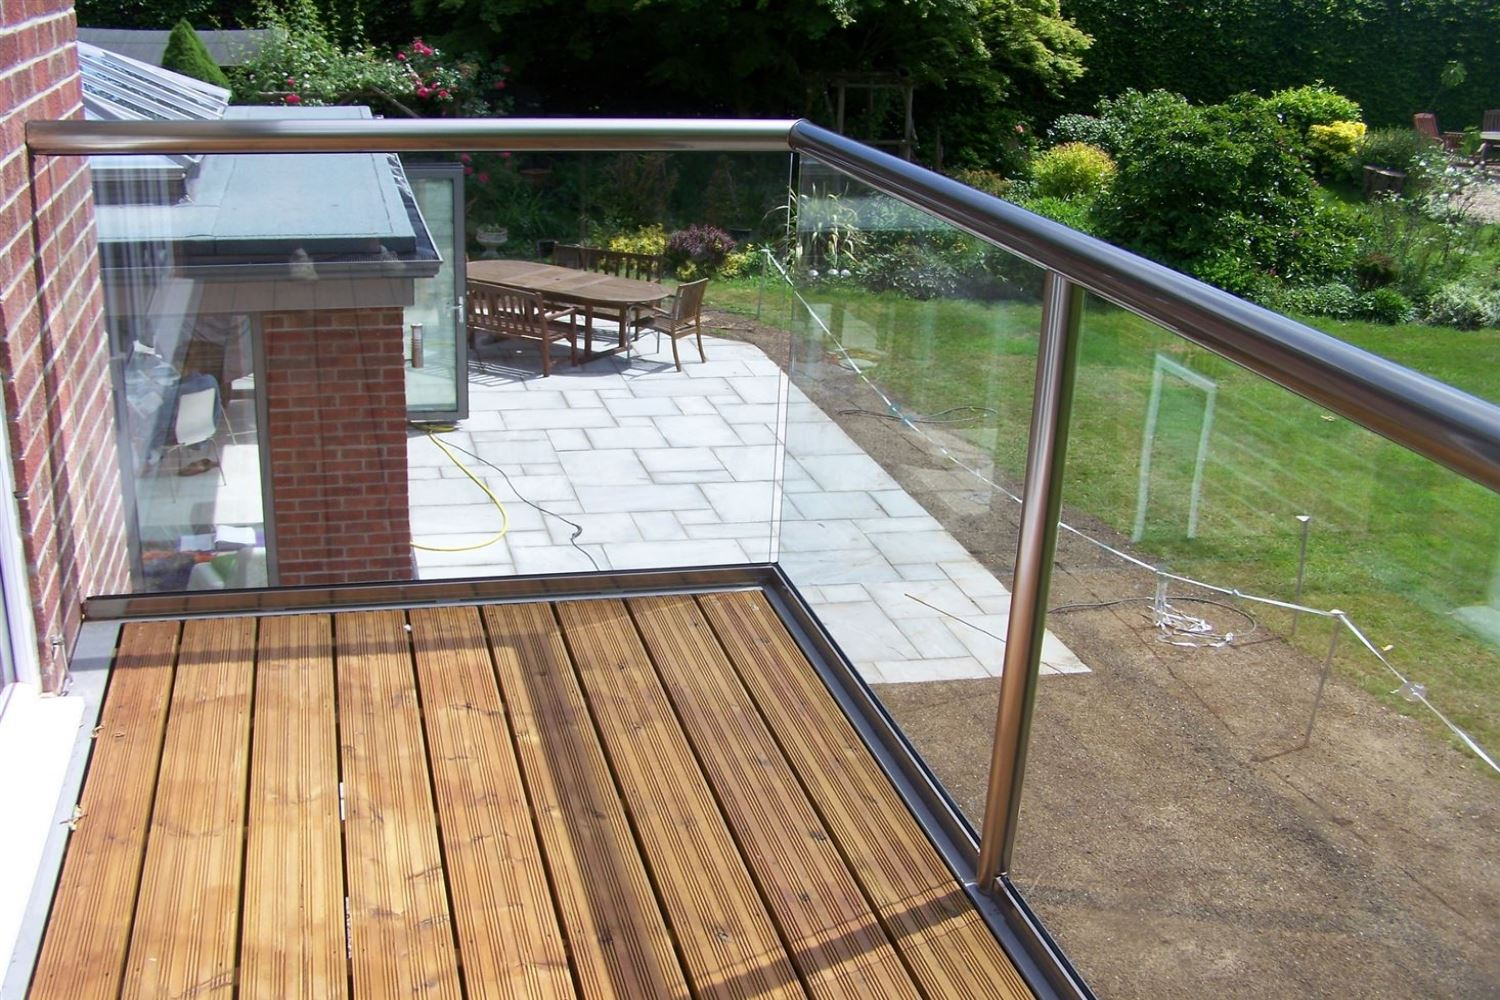 Orbit Royal Chrome Glass Balustrade overlooking a garden view with a patio